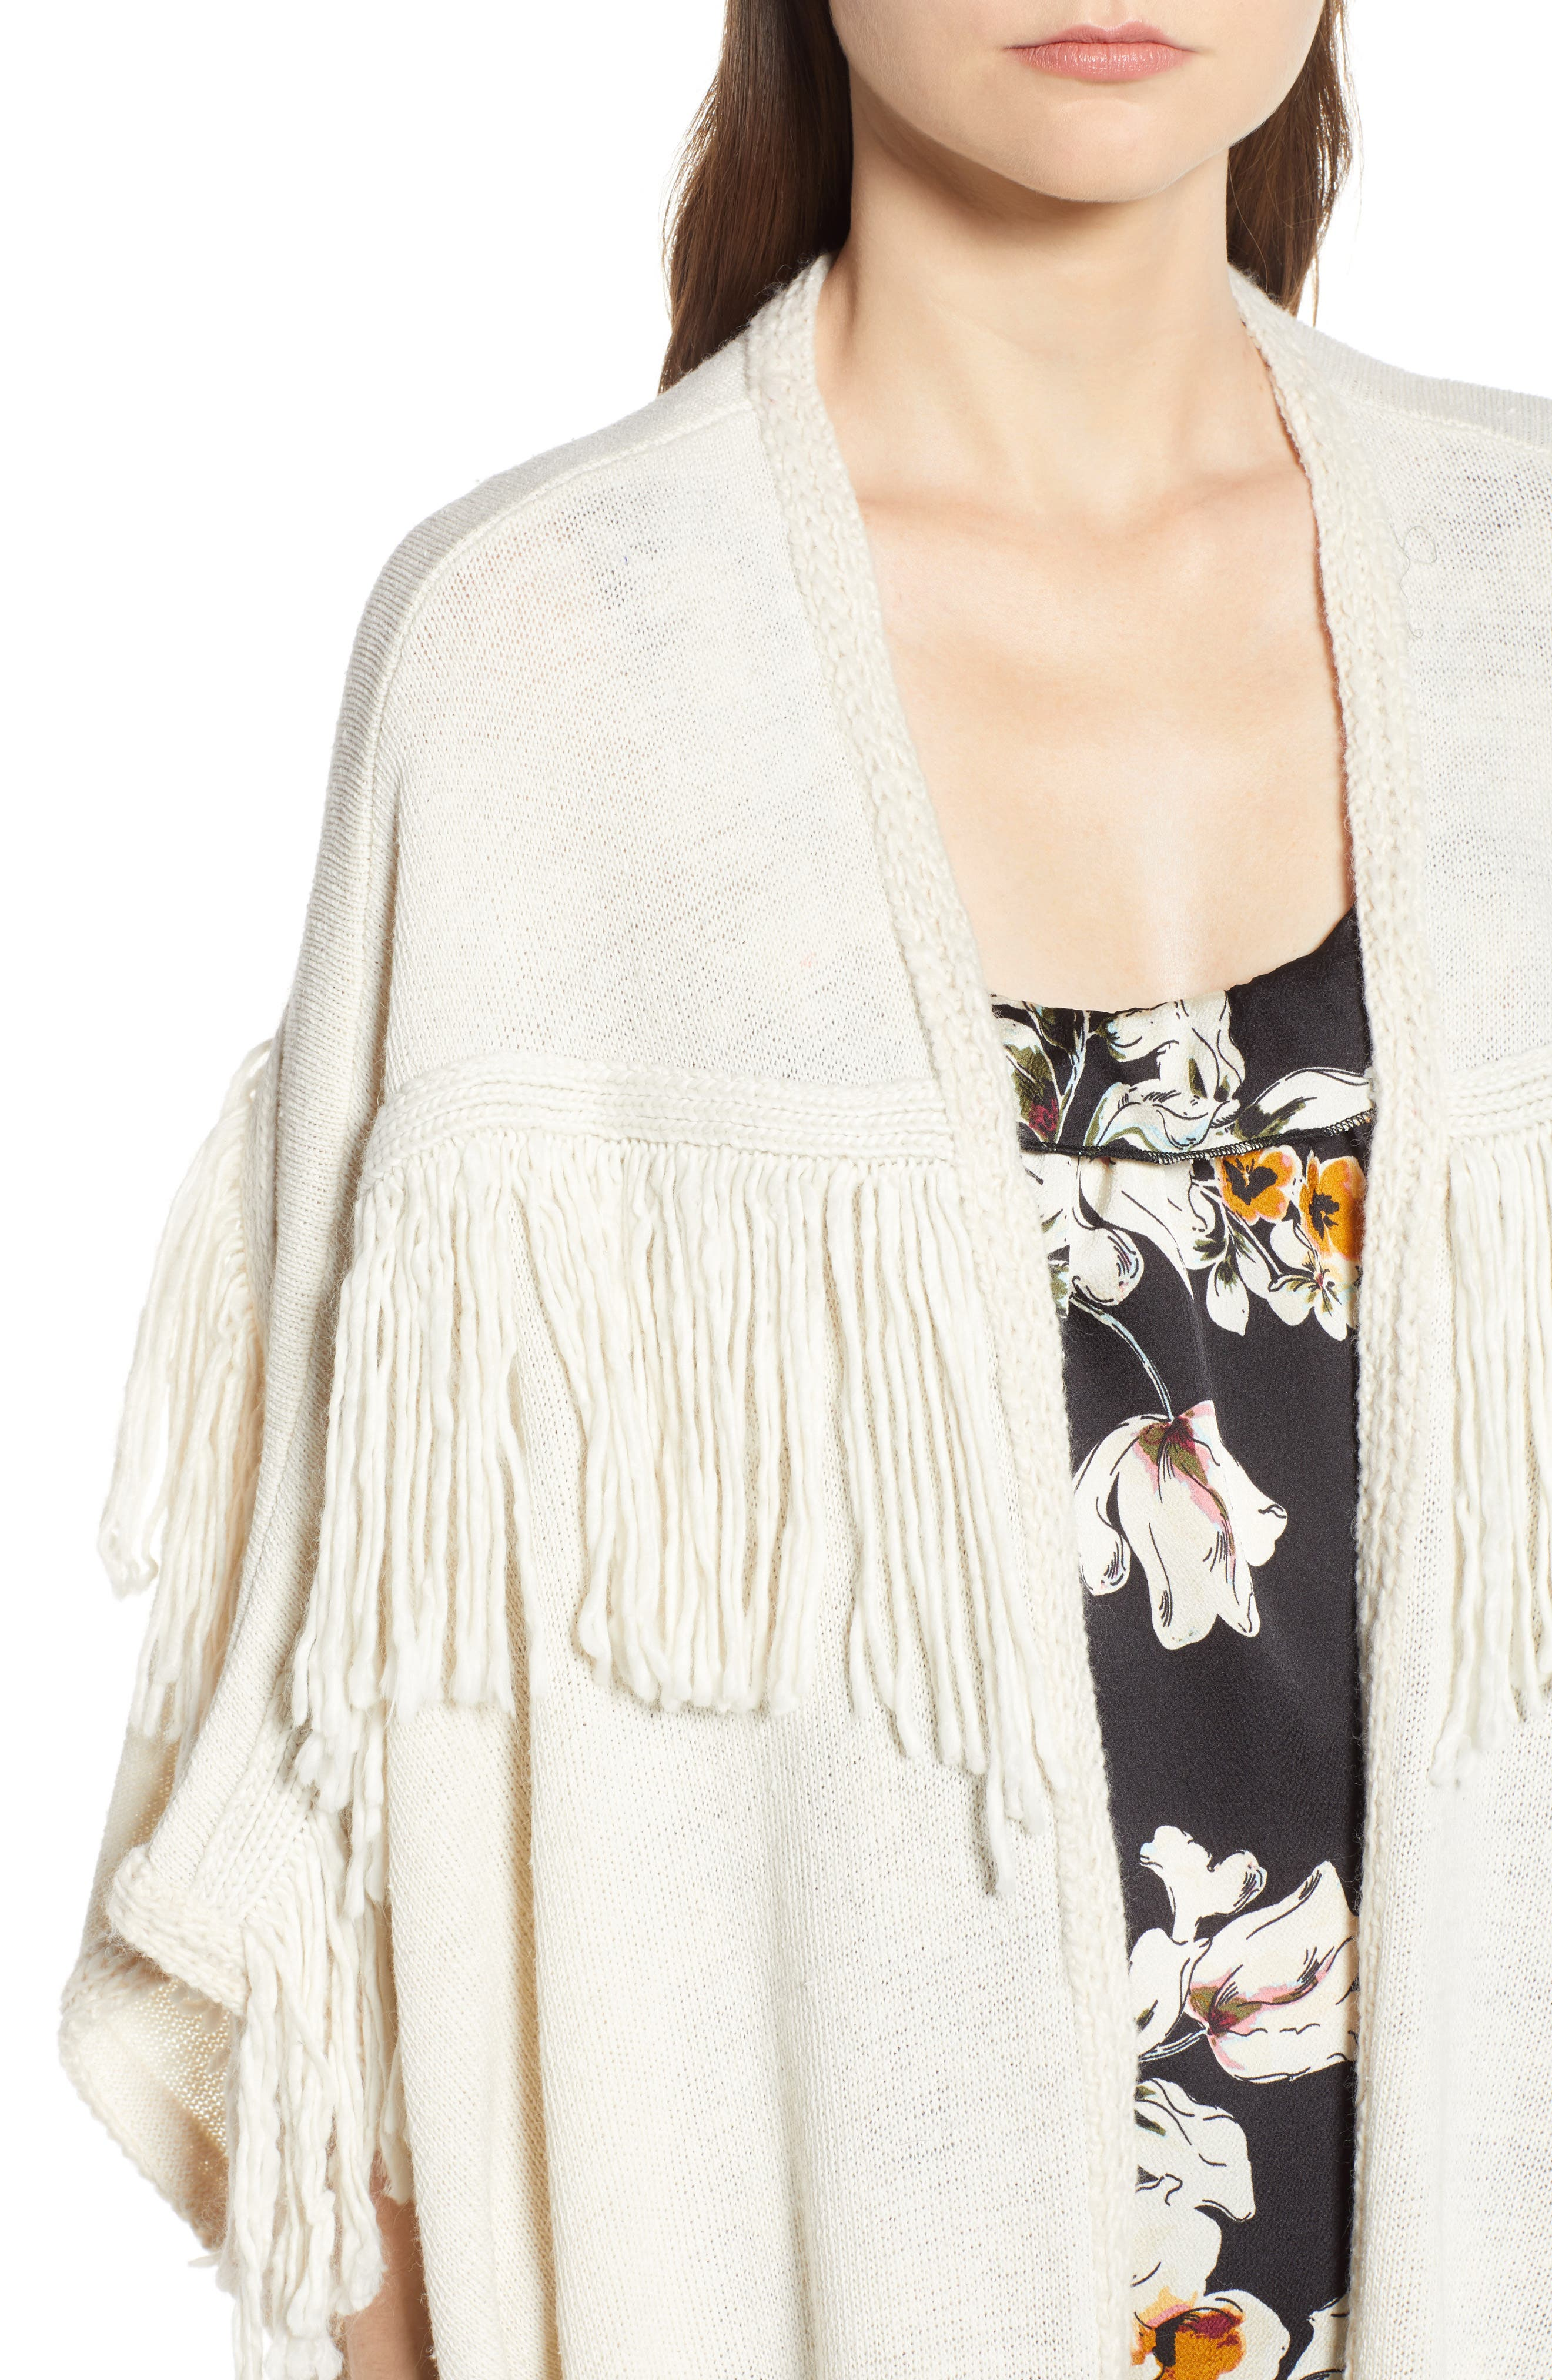 Bishop + Young Fringe Open Front Cardigan,                             Alternate thumbnail 4, color,                             IVORY